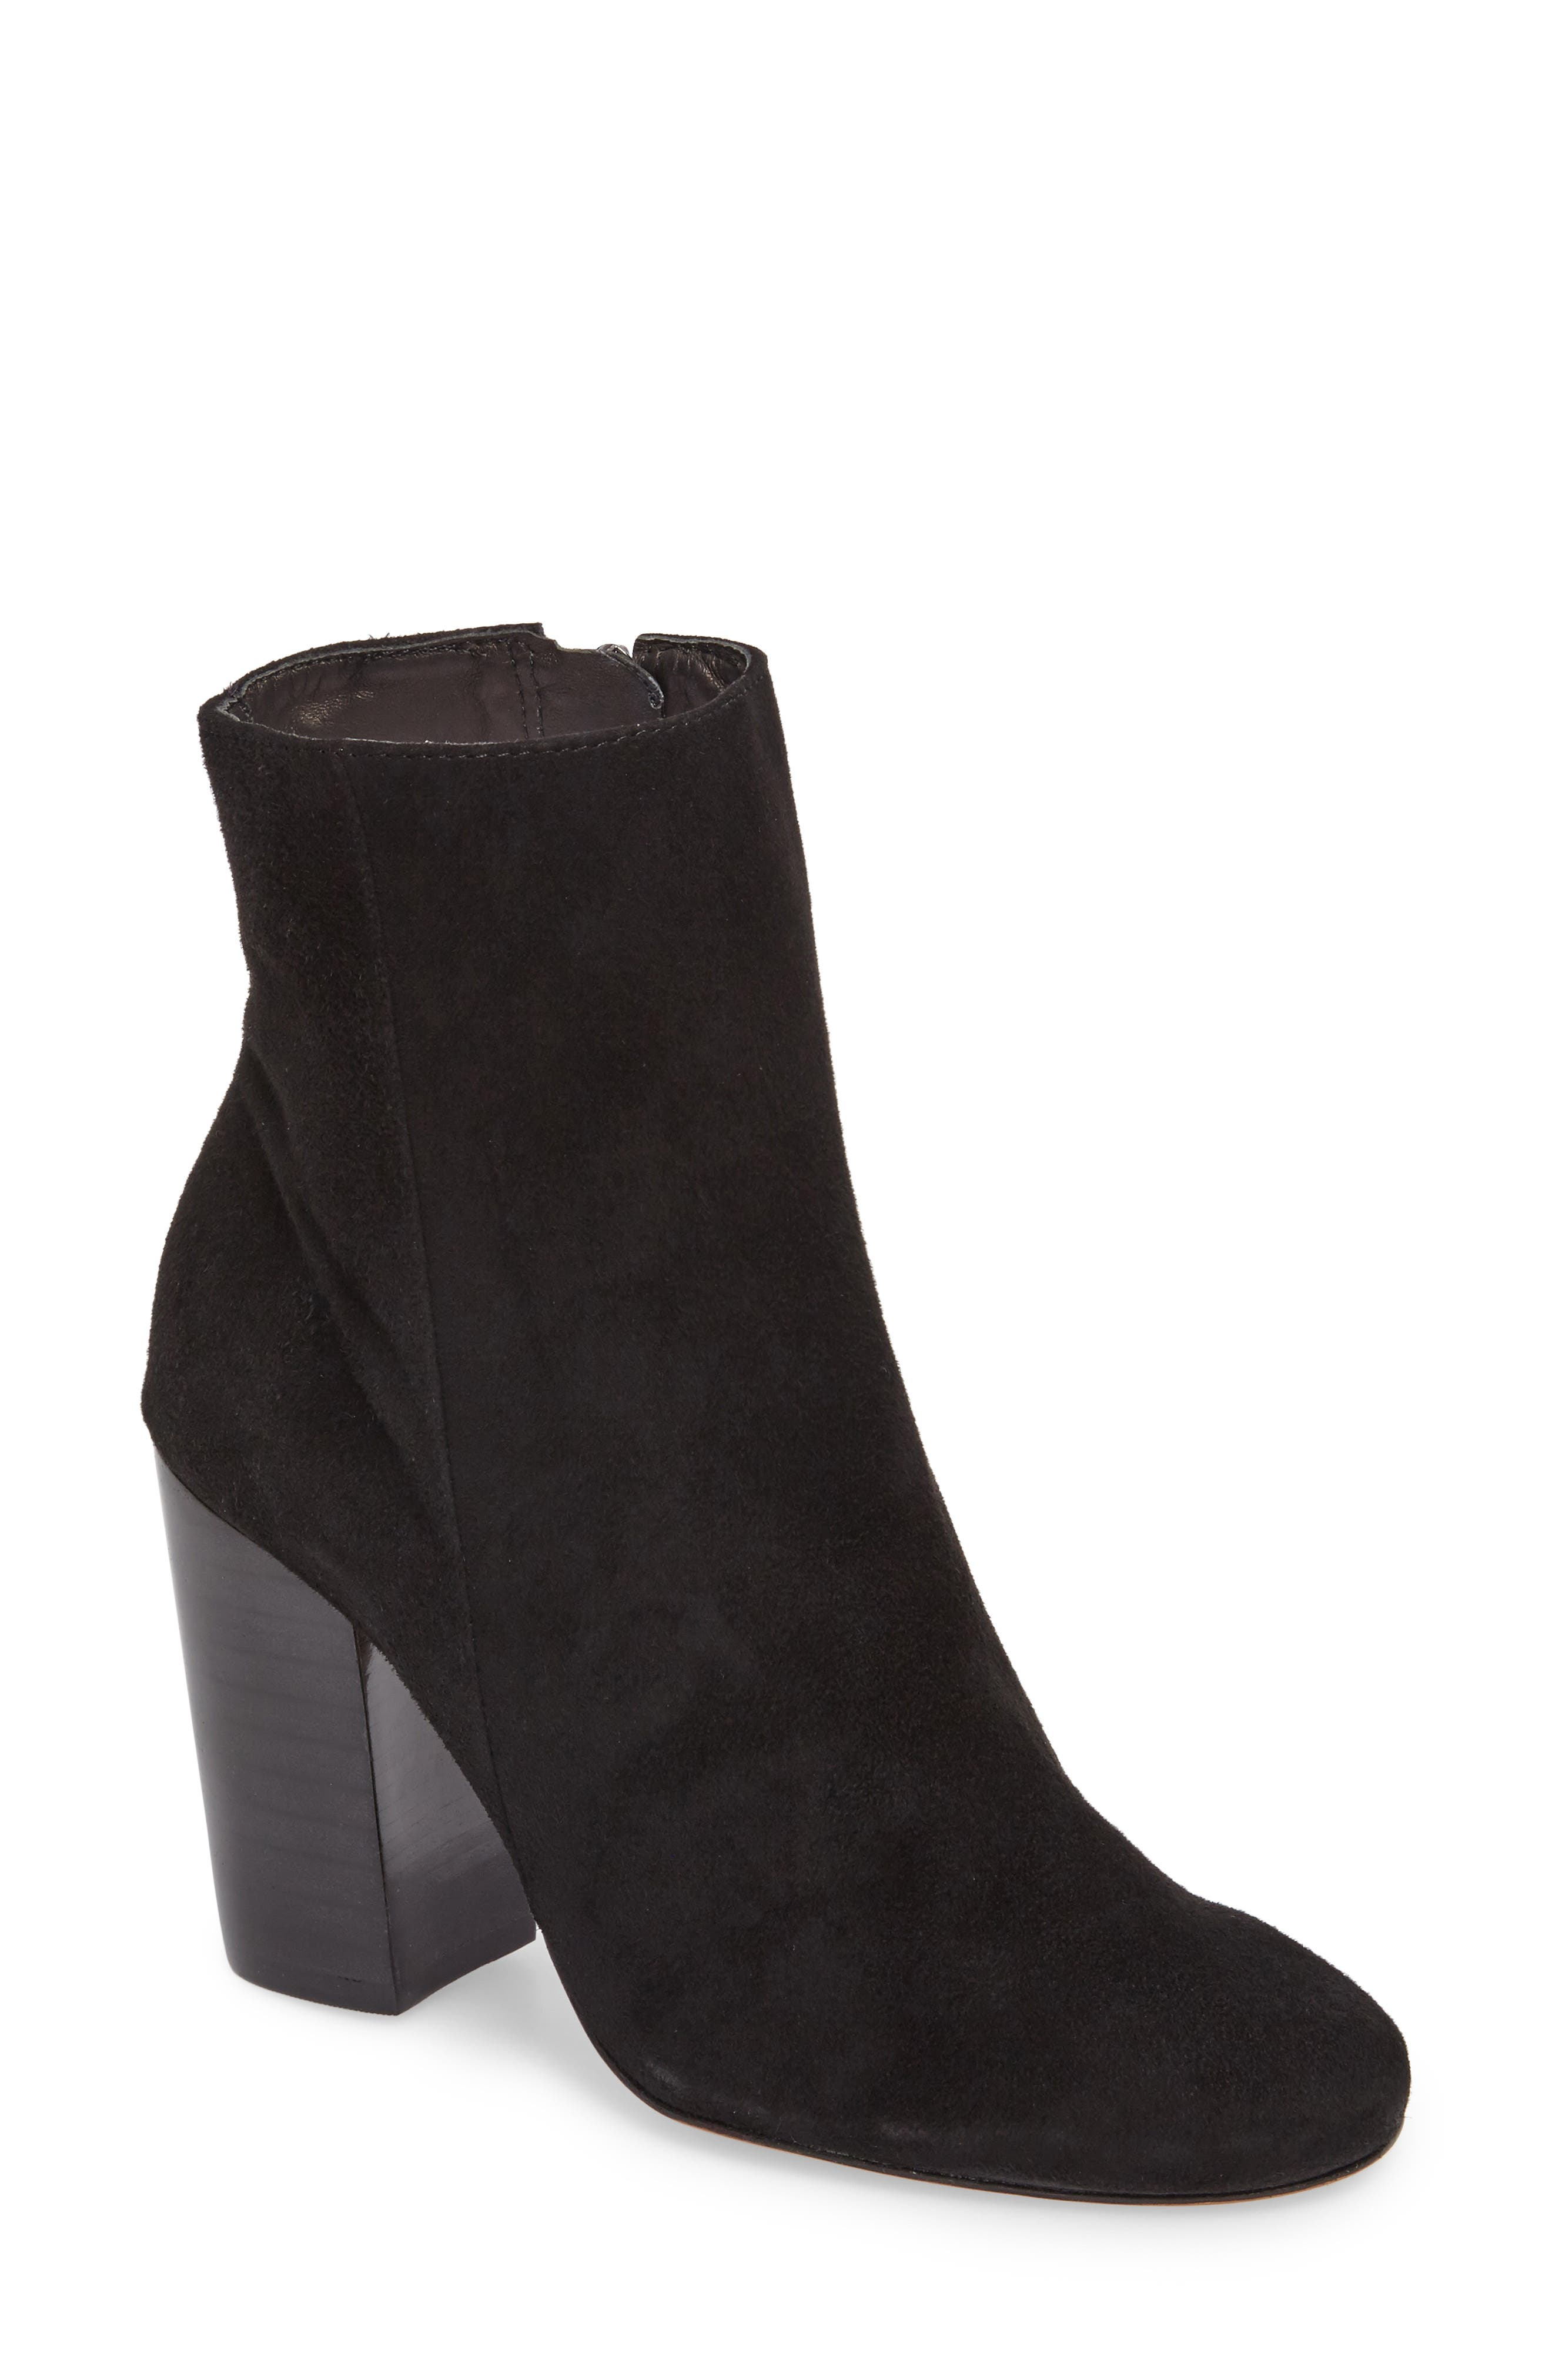 Ravan Block Heel Bootie,                         Main,                         color, 001